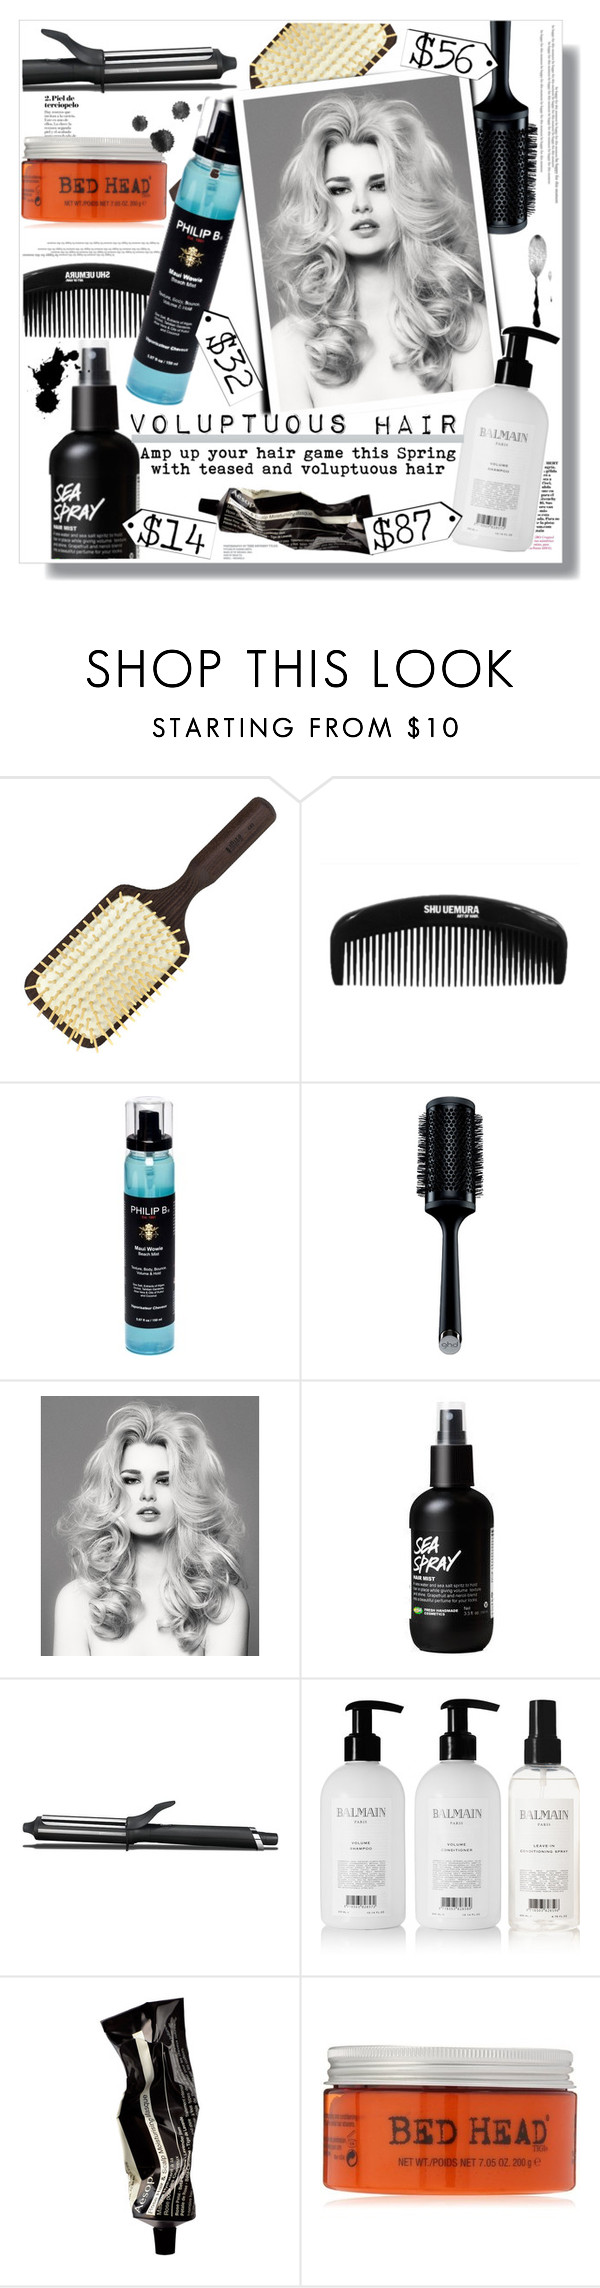 """""""Spring Hair"""" by chocolate-addicted-angel on Polyvore featuring beauty, Ibiza Hair, Philip B, GHD, Balmain, Aesop, Spring, Beauty, hair and 2016"""